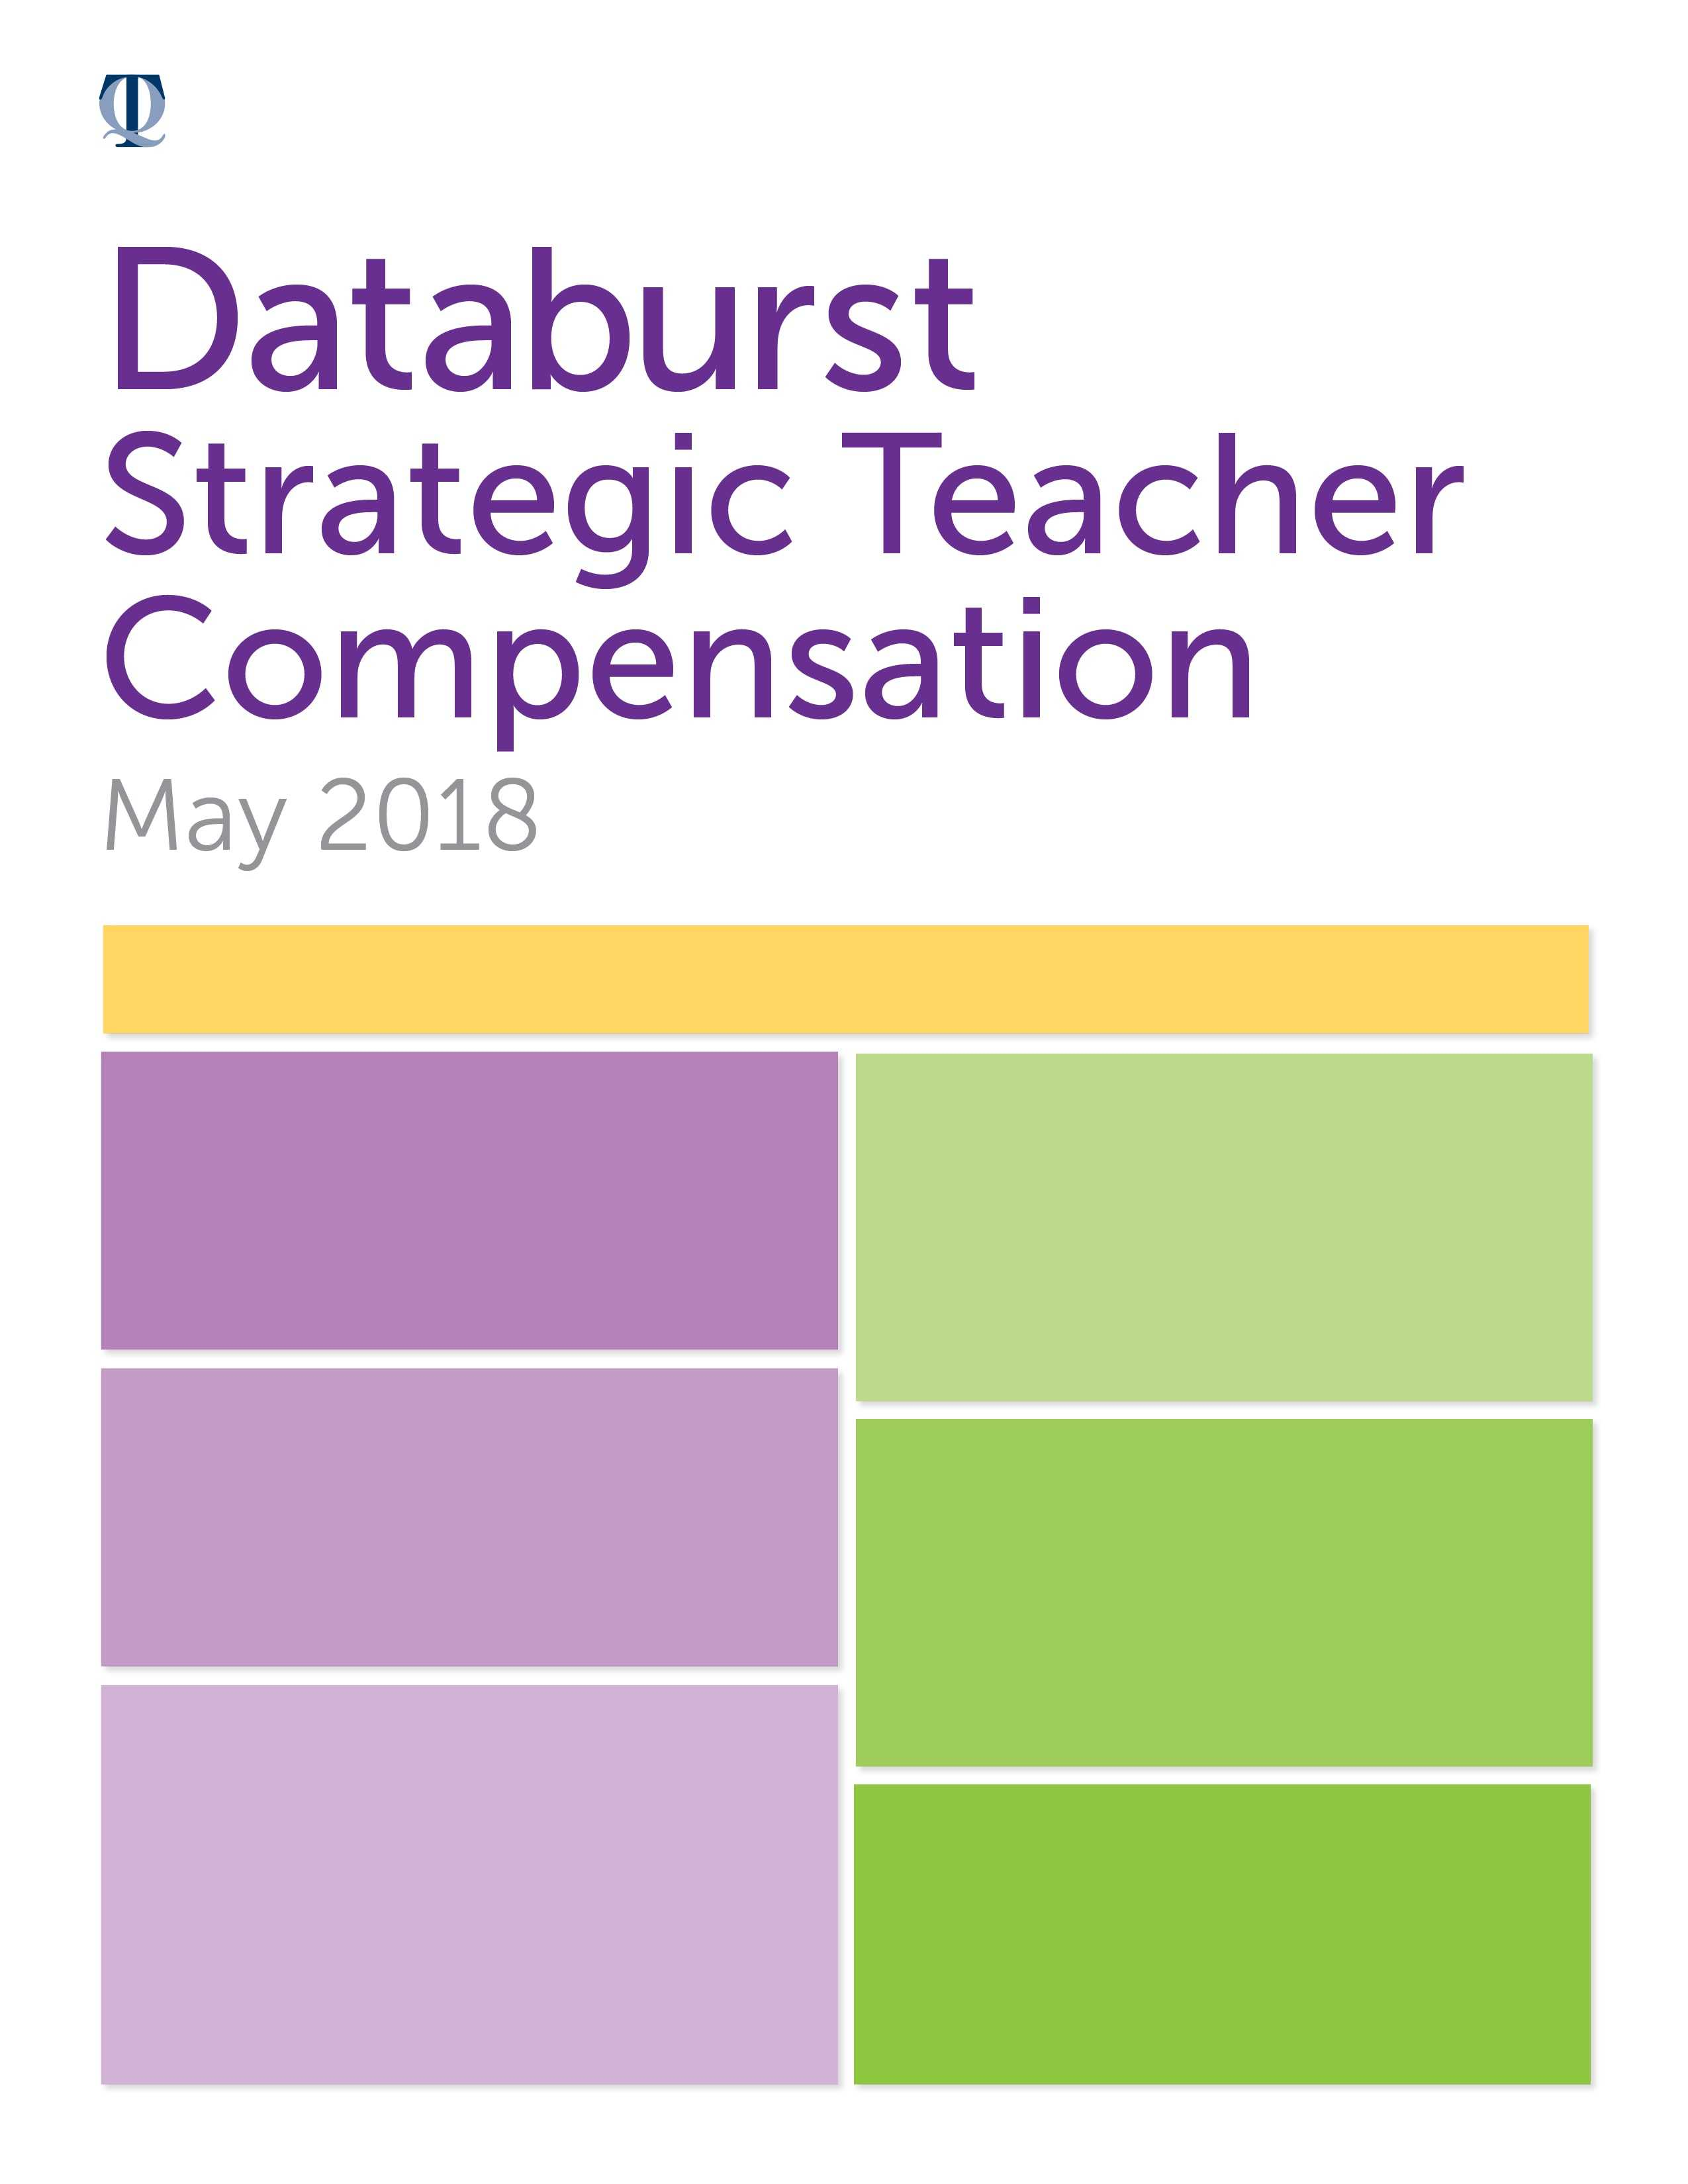 Strategic Teacher Compensation Databurst Press Release